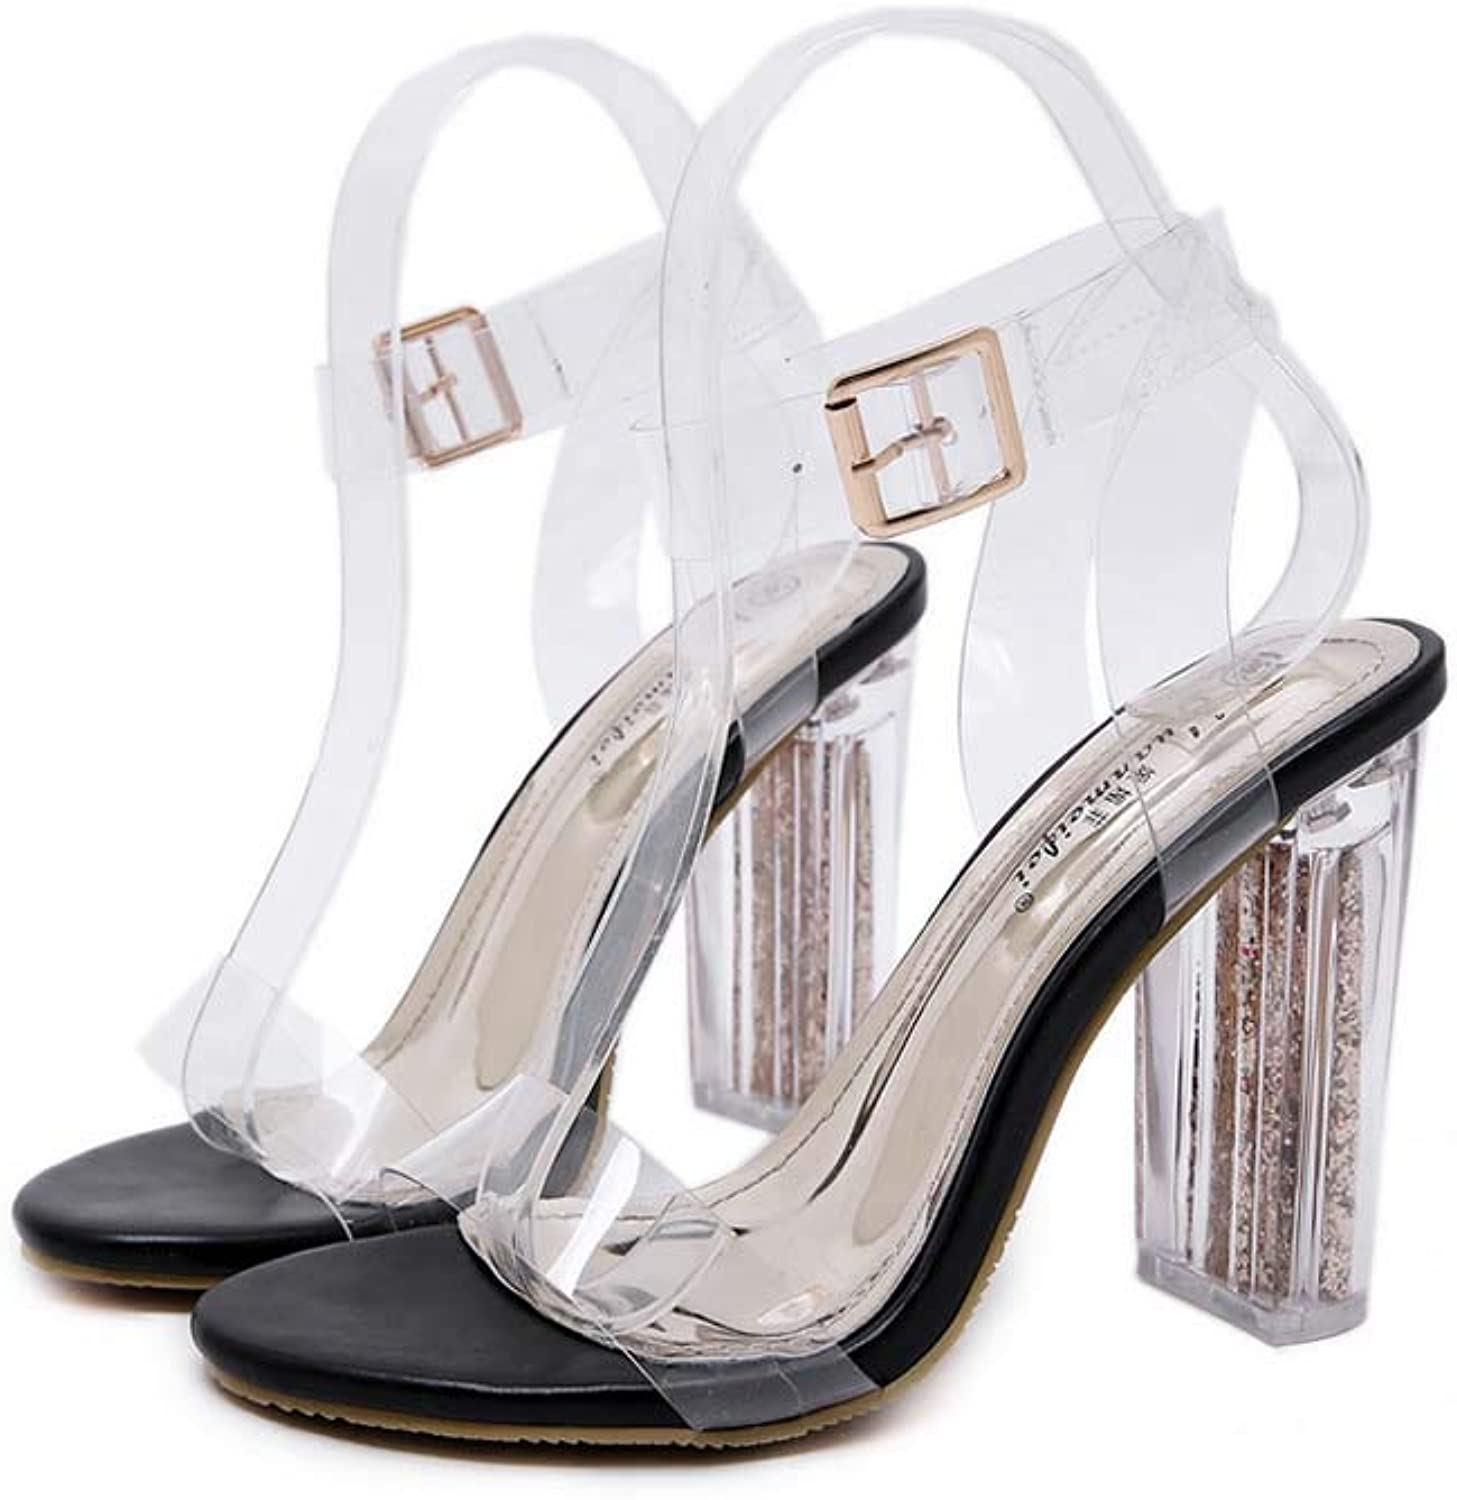 Women Lucite Clear Ankle Strap Sandals,Adjustable Buckle Block Chunky Perspex Open Toe High Heels,Transparent Dress shoes